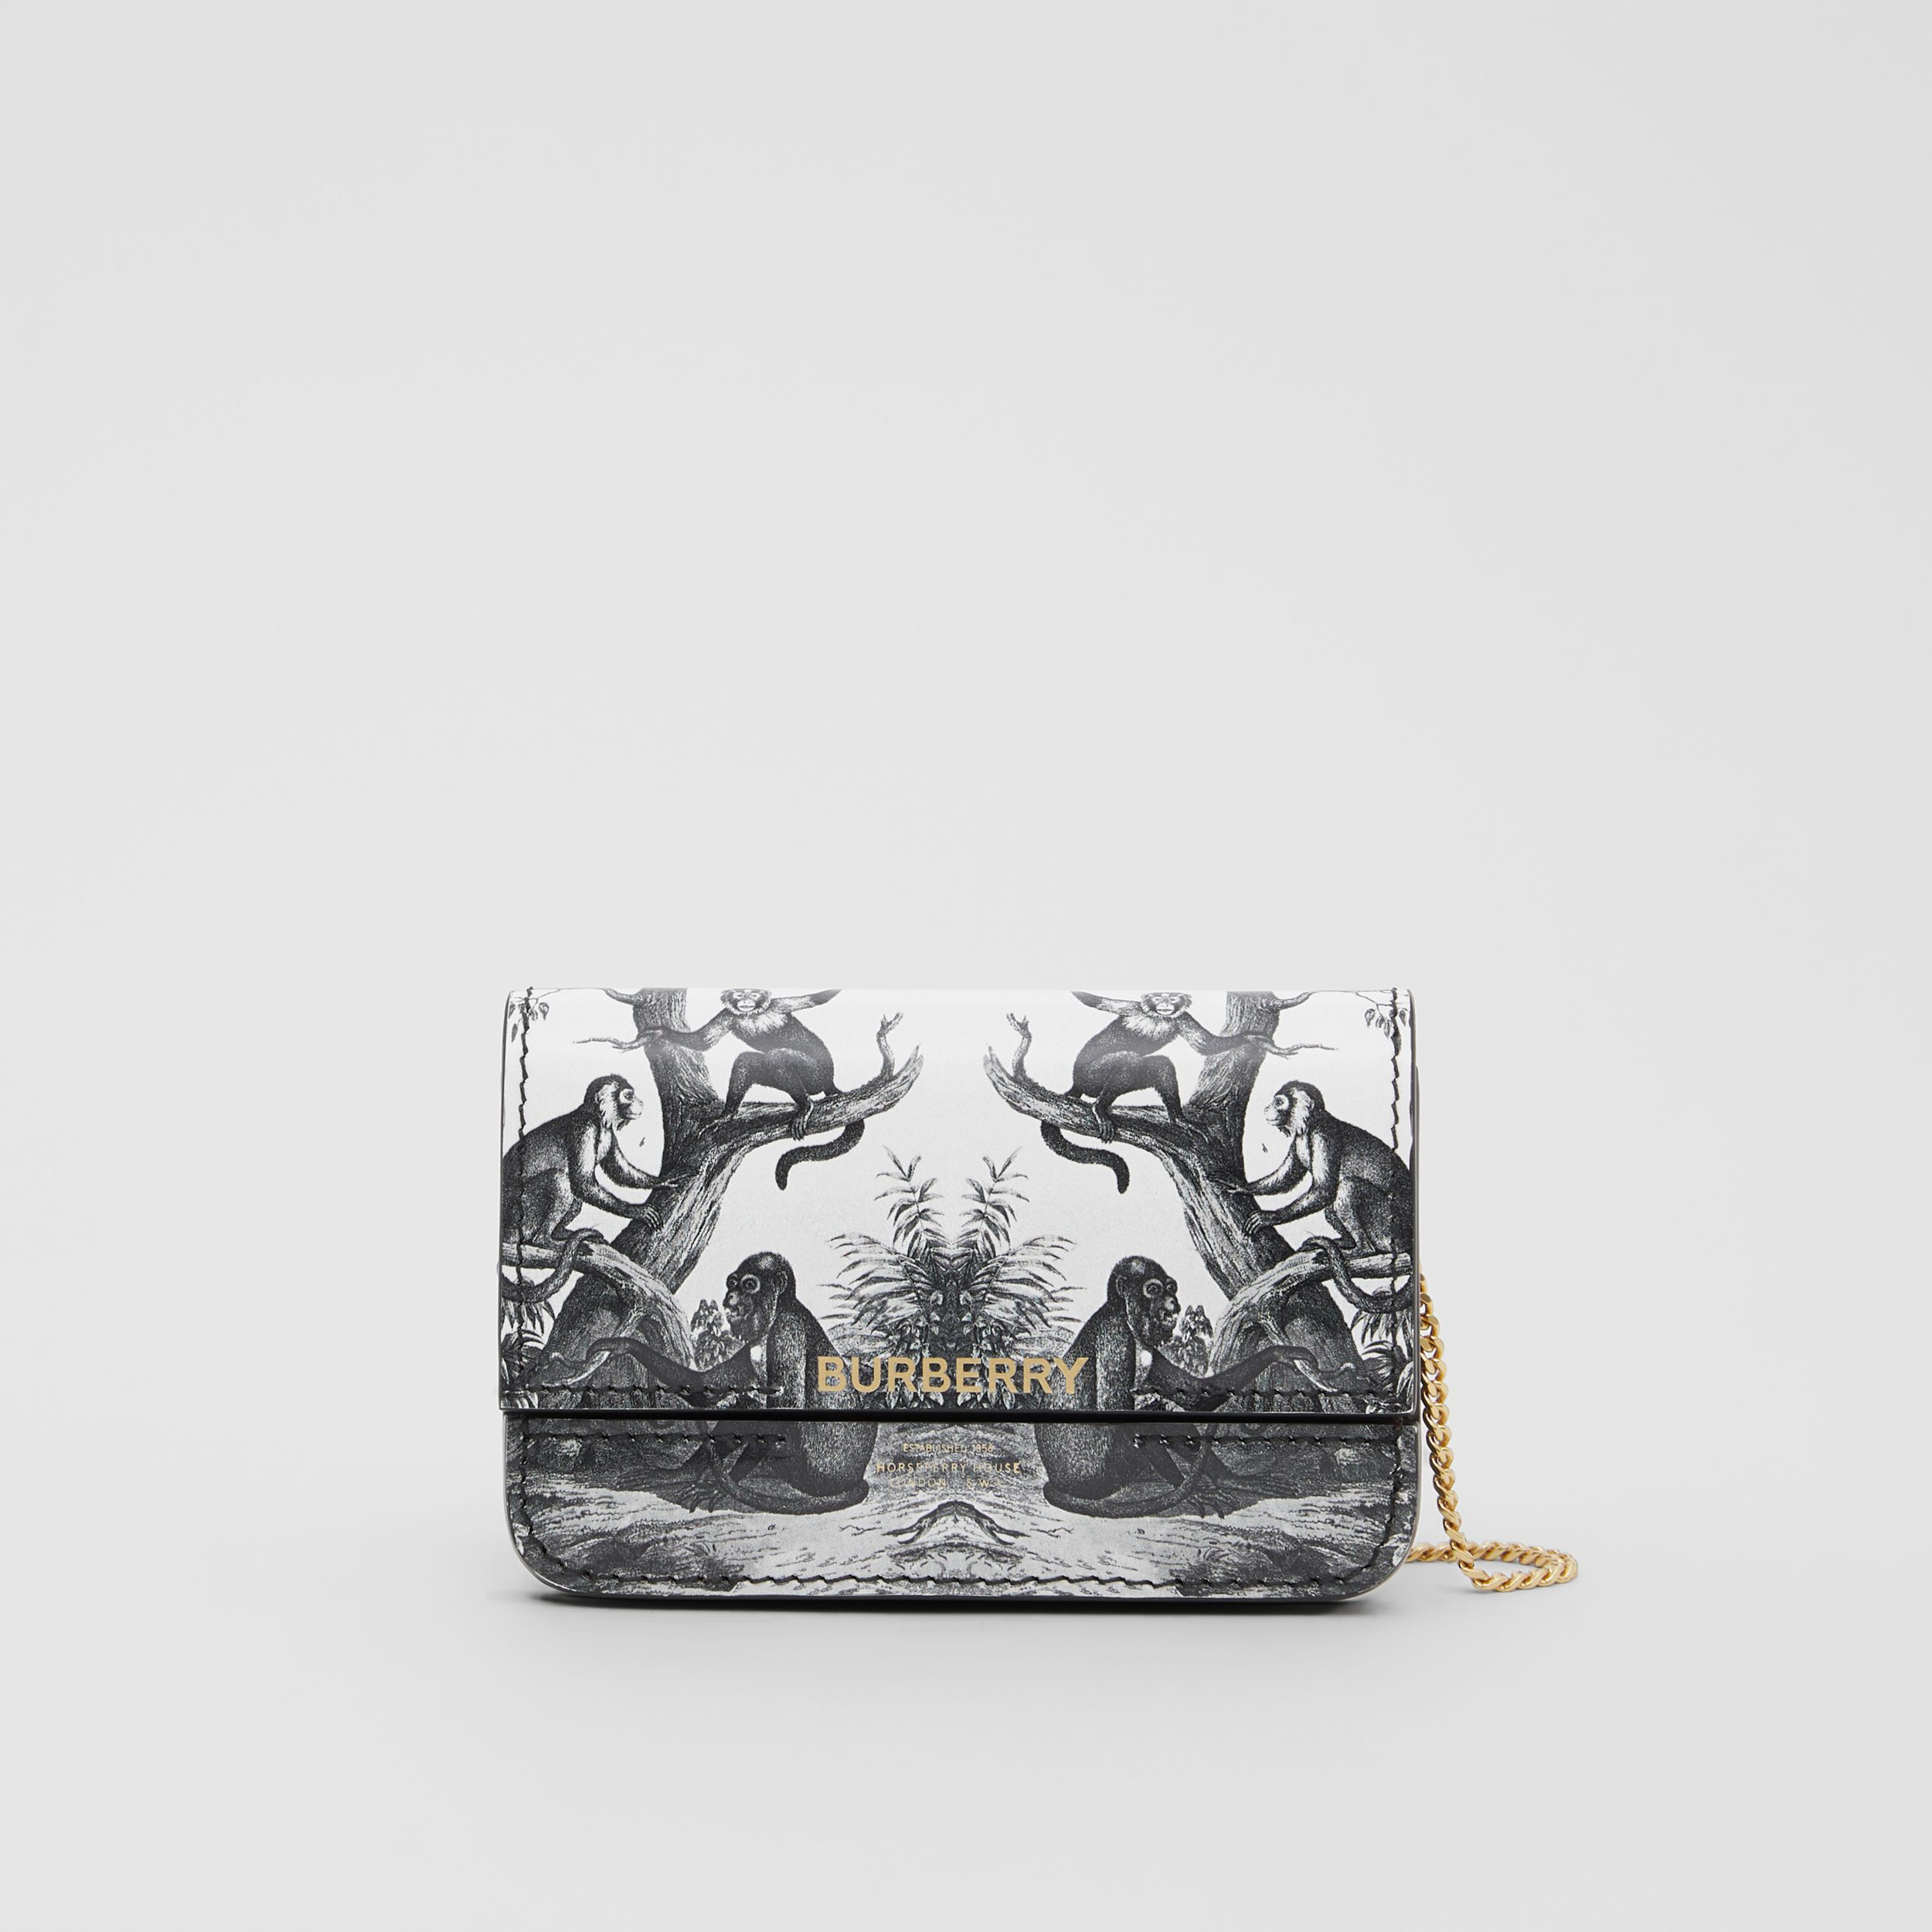 Monkey Print Leather Card Case with Chain Strap in Black/white | Burberry Australia - 1